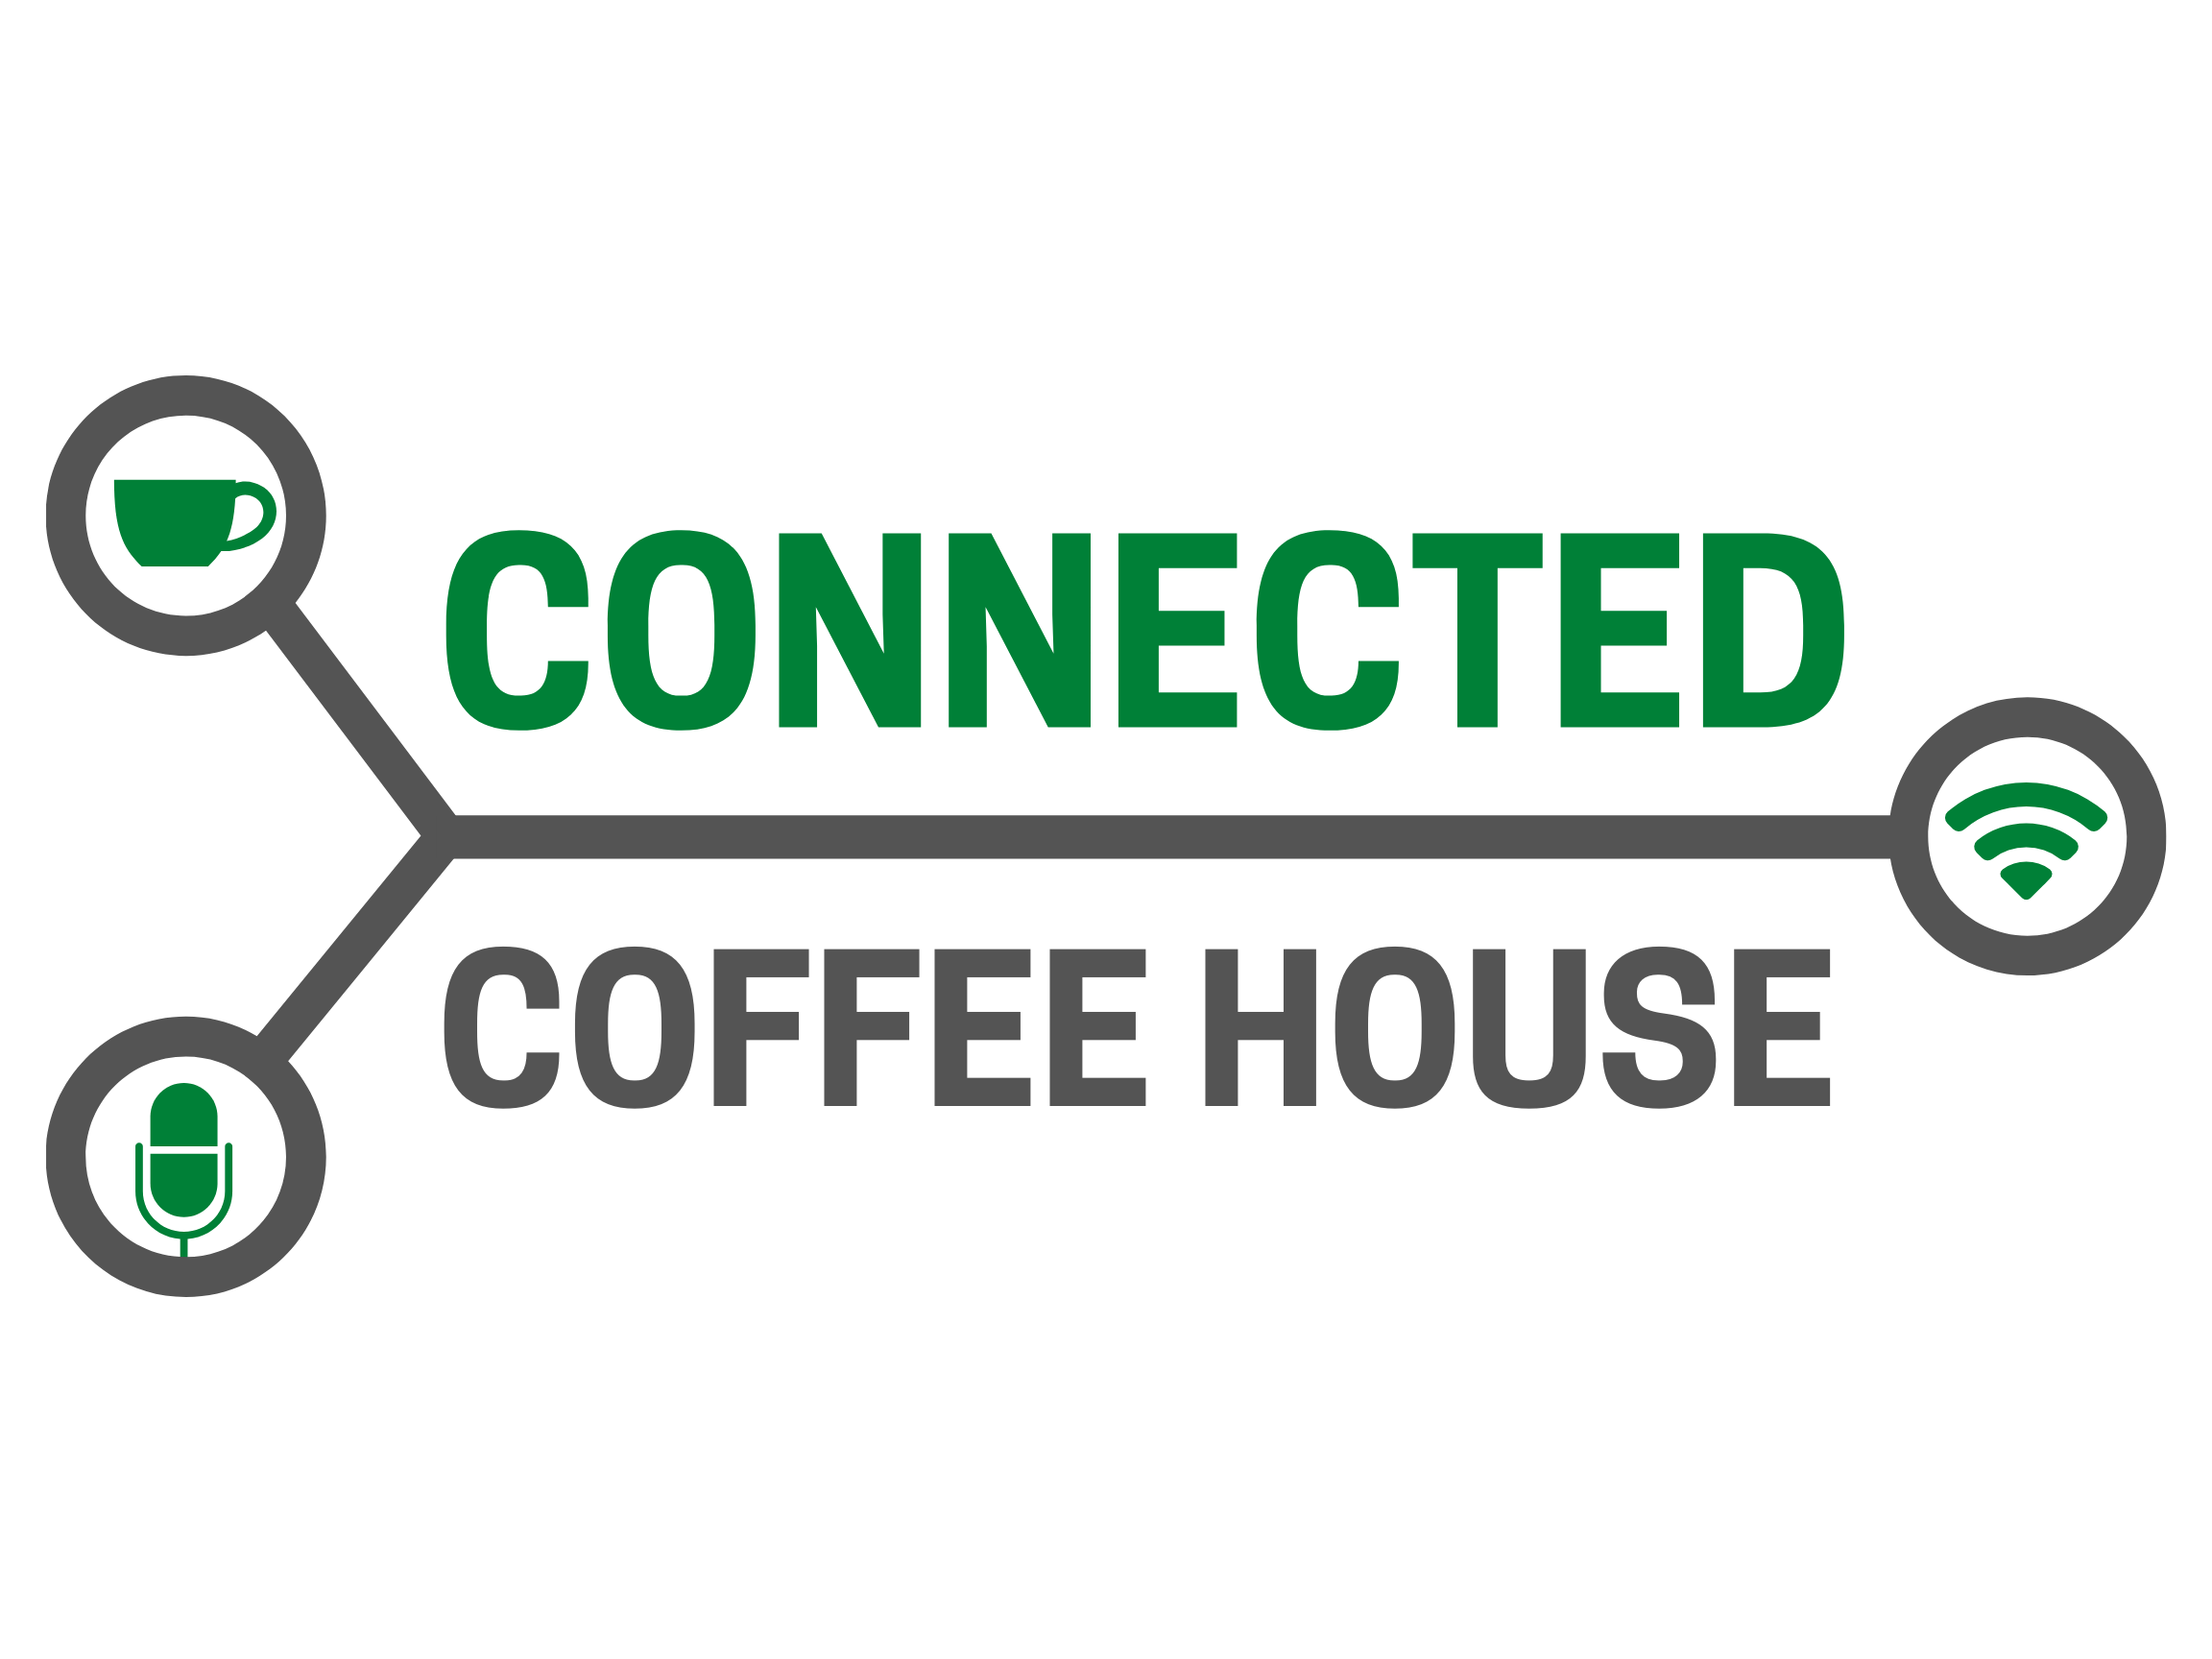 Connected Coffee House Logo